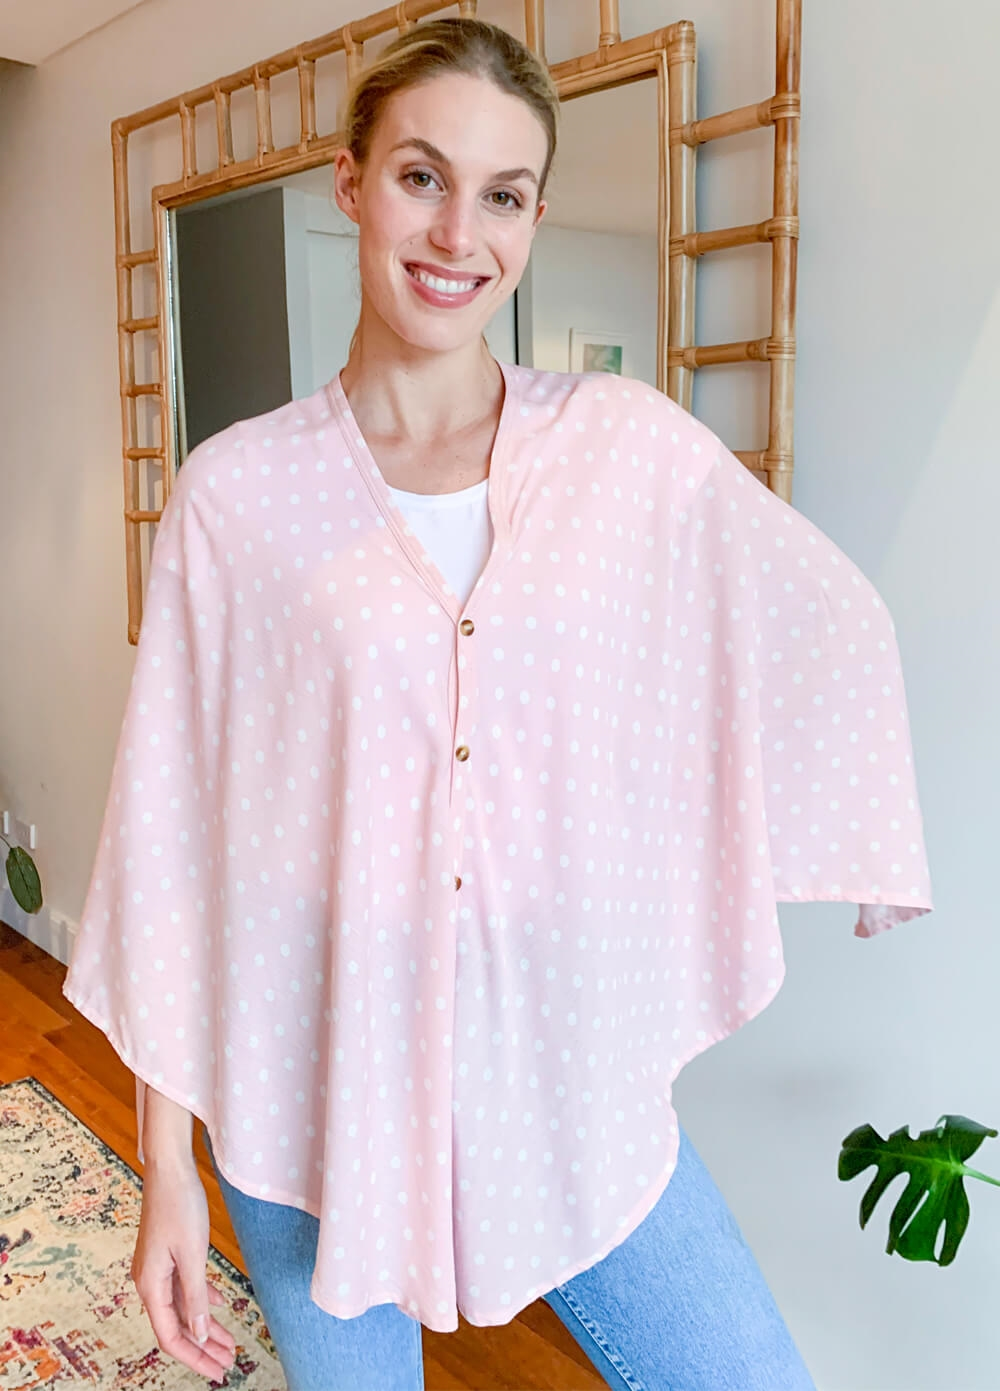 Lait & Co - Nursing Couverture in Pink Polkadot | Queen Bee